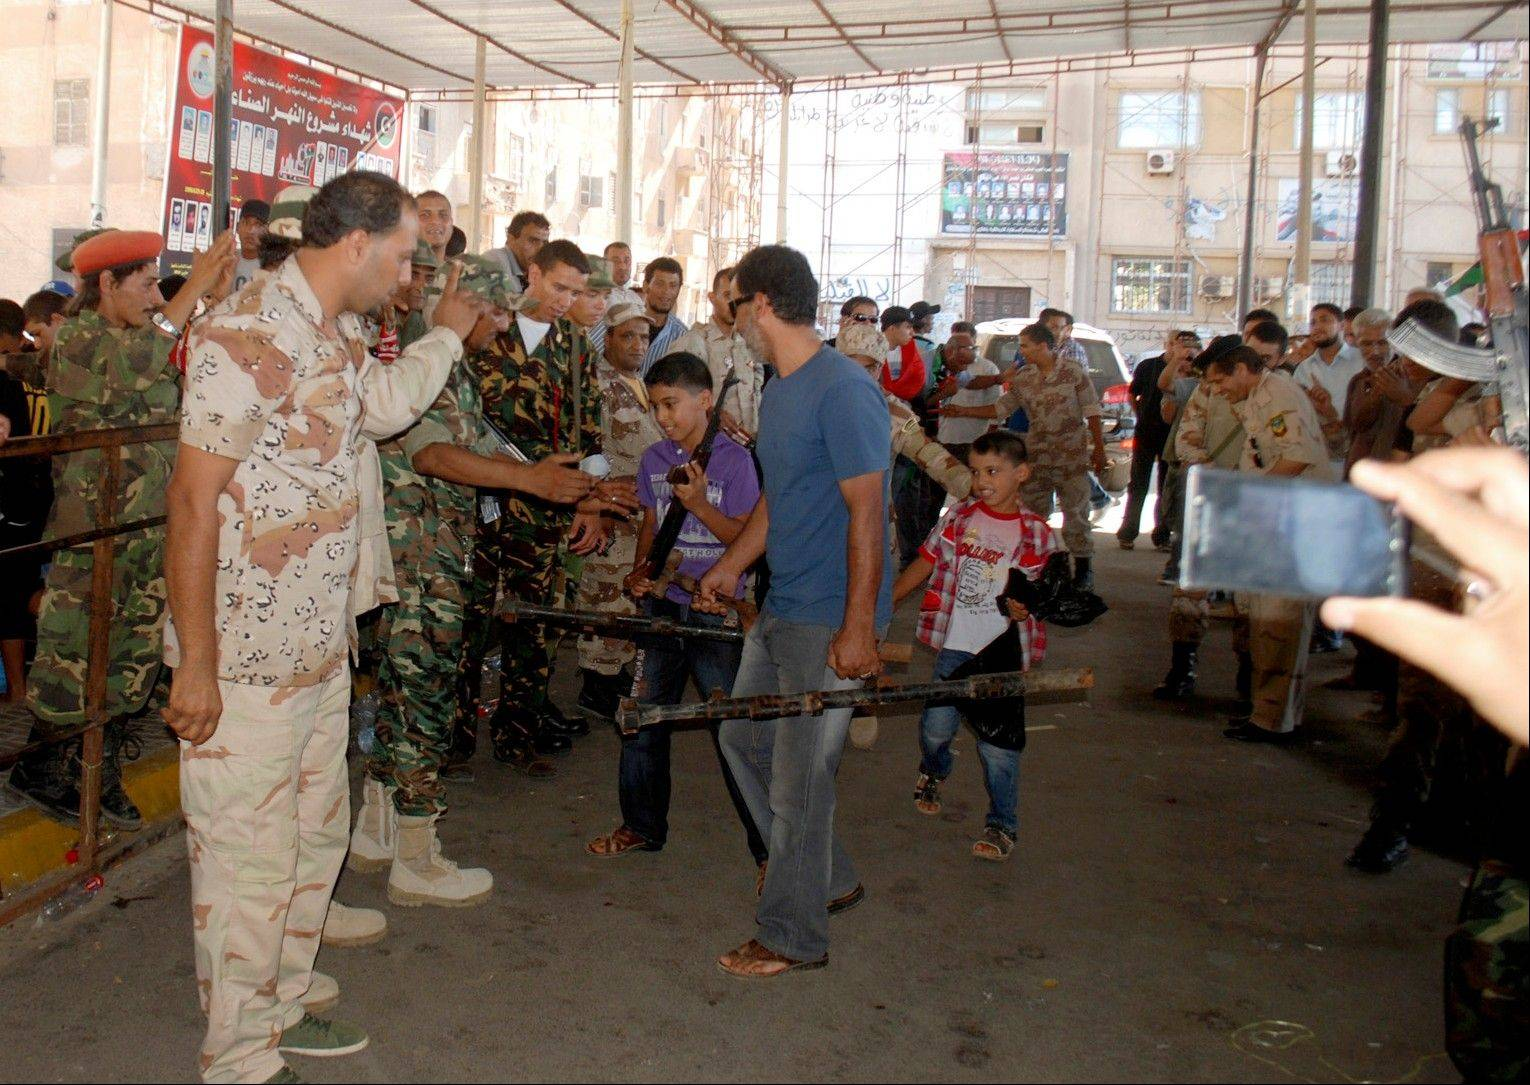 Libyan civilians turn in weapons to security forces Saturday in Benghazi, Libya. Hundreds of Libyans have converged on a main square in Benghazi in response to a call from the military to hand over their weapons, some driving in with armored personnel carriers, vehicles with mounted anti-aircraft guns and hundreds of rocket launchers.